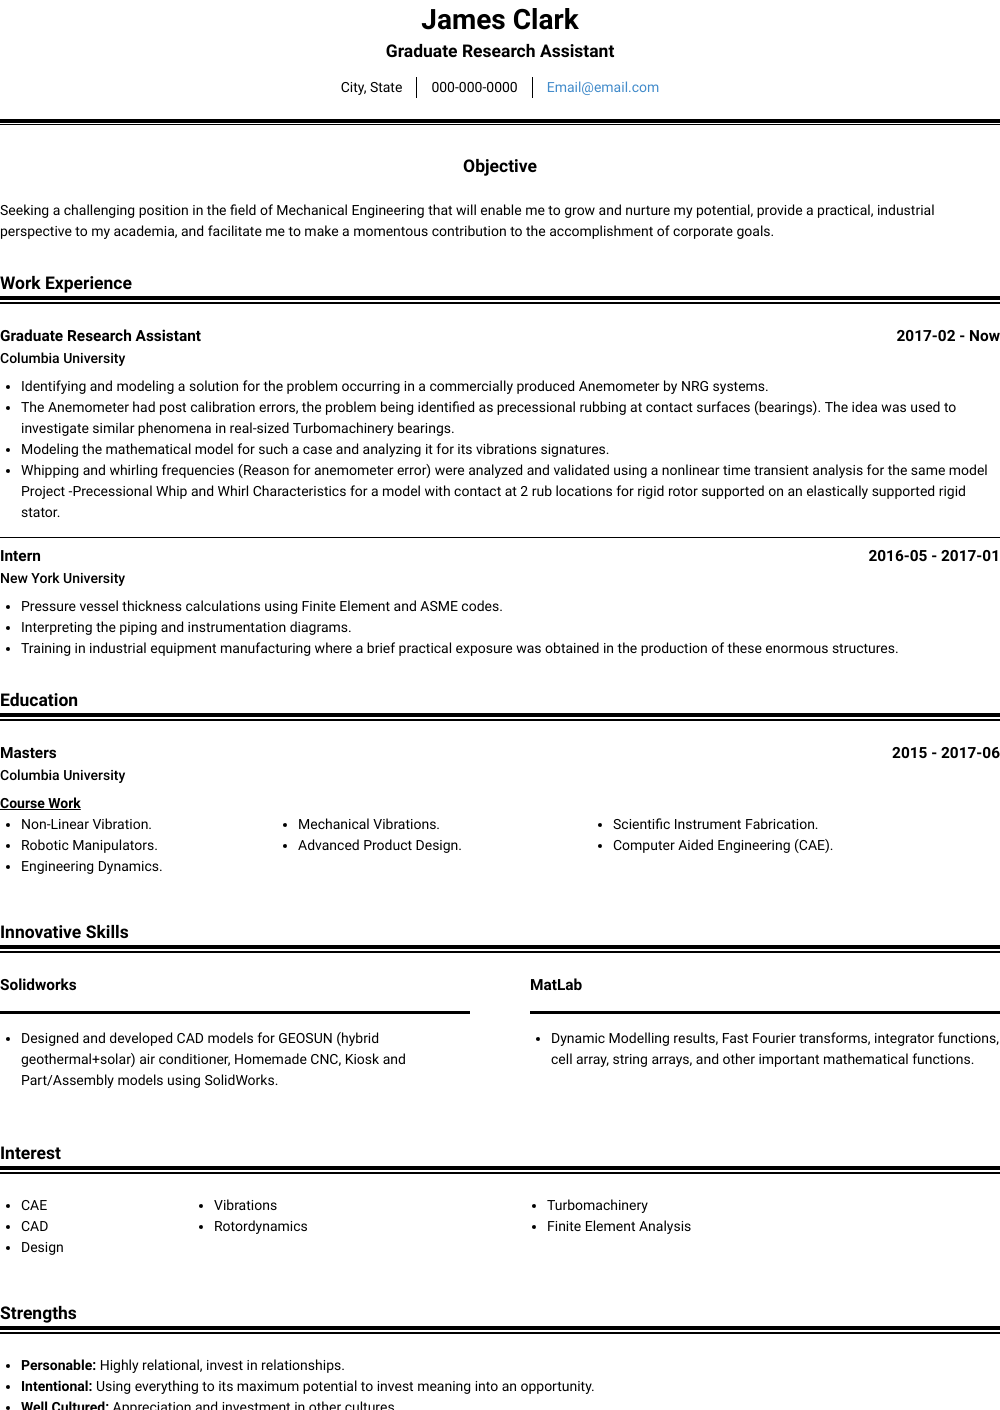 Graduate Student - Resume Samples & Templates | VisualCV